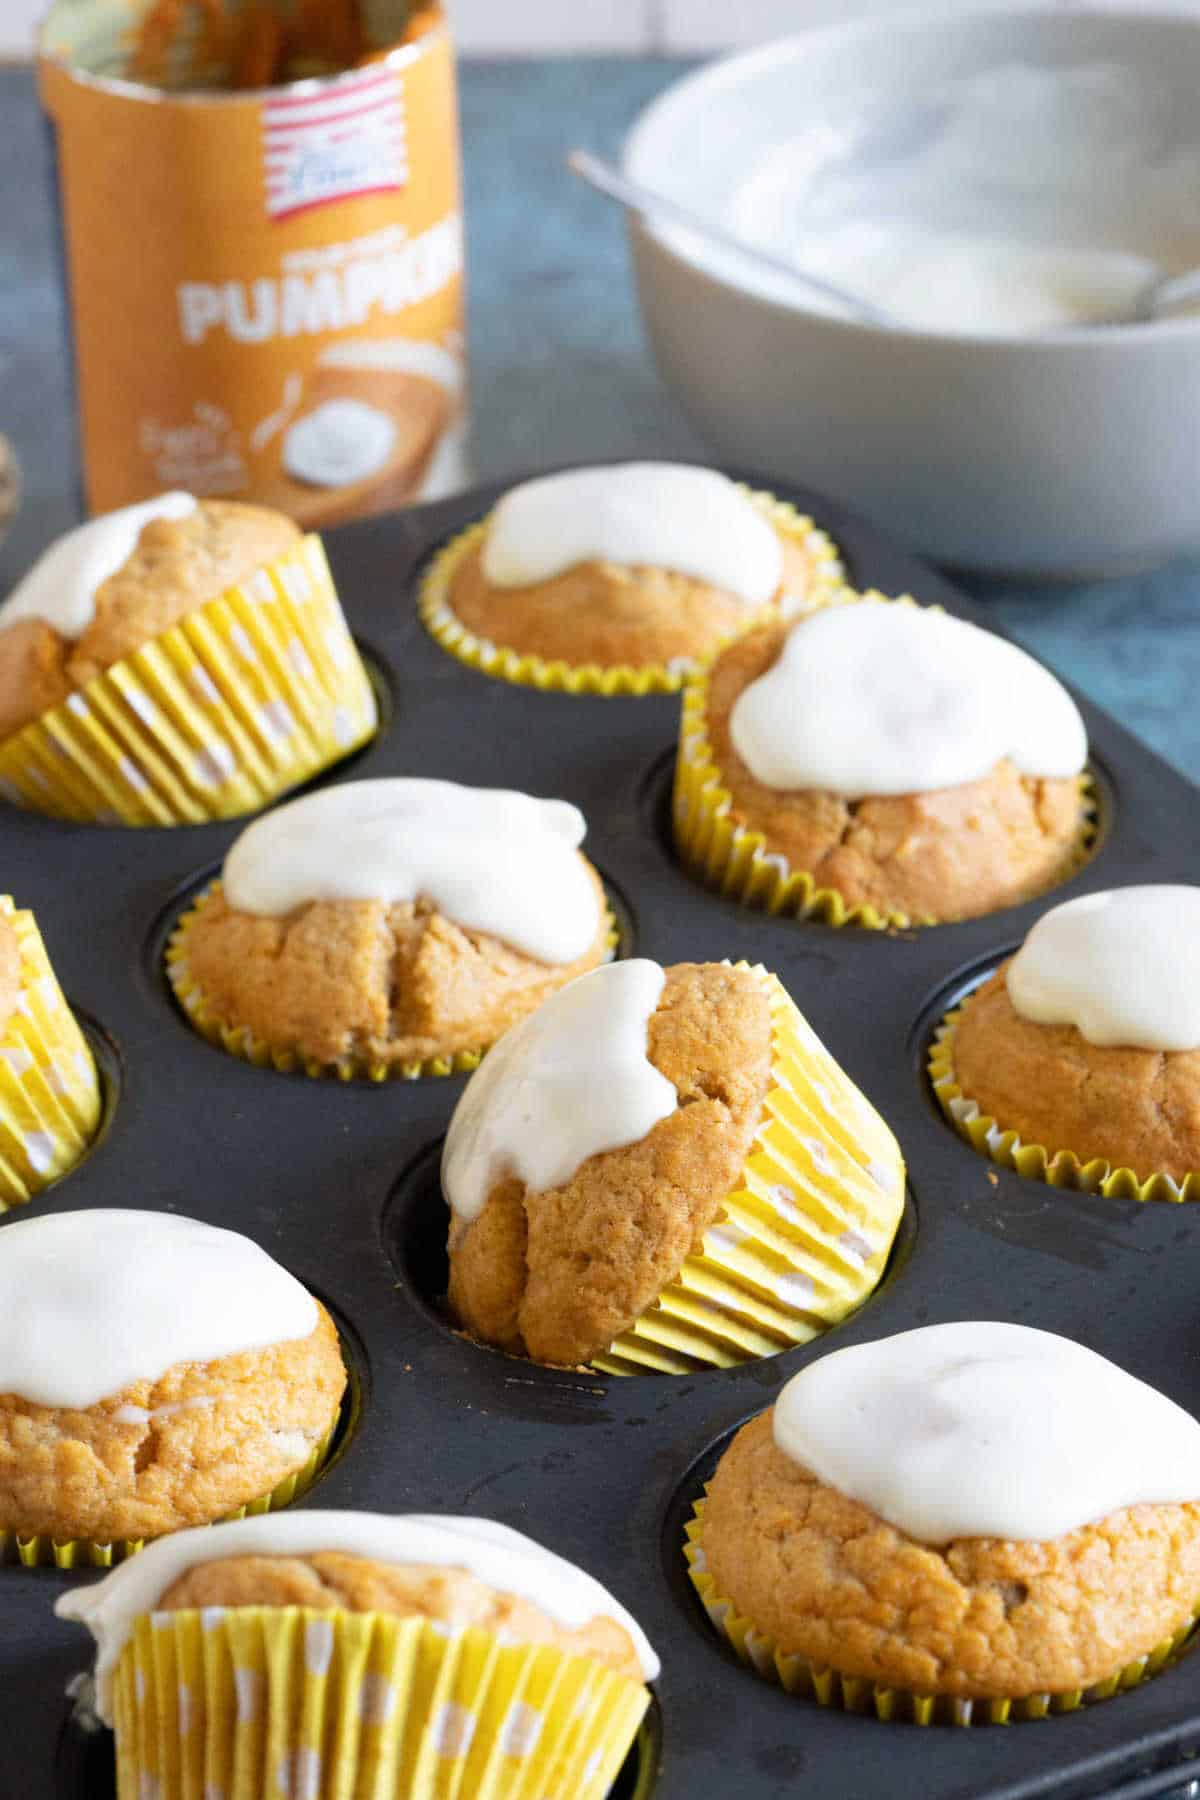 A stack of pumpkin muffins on a cake stand.